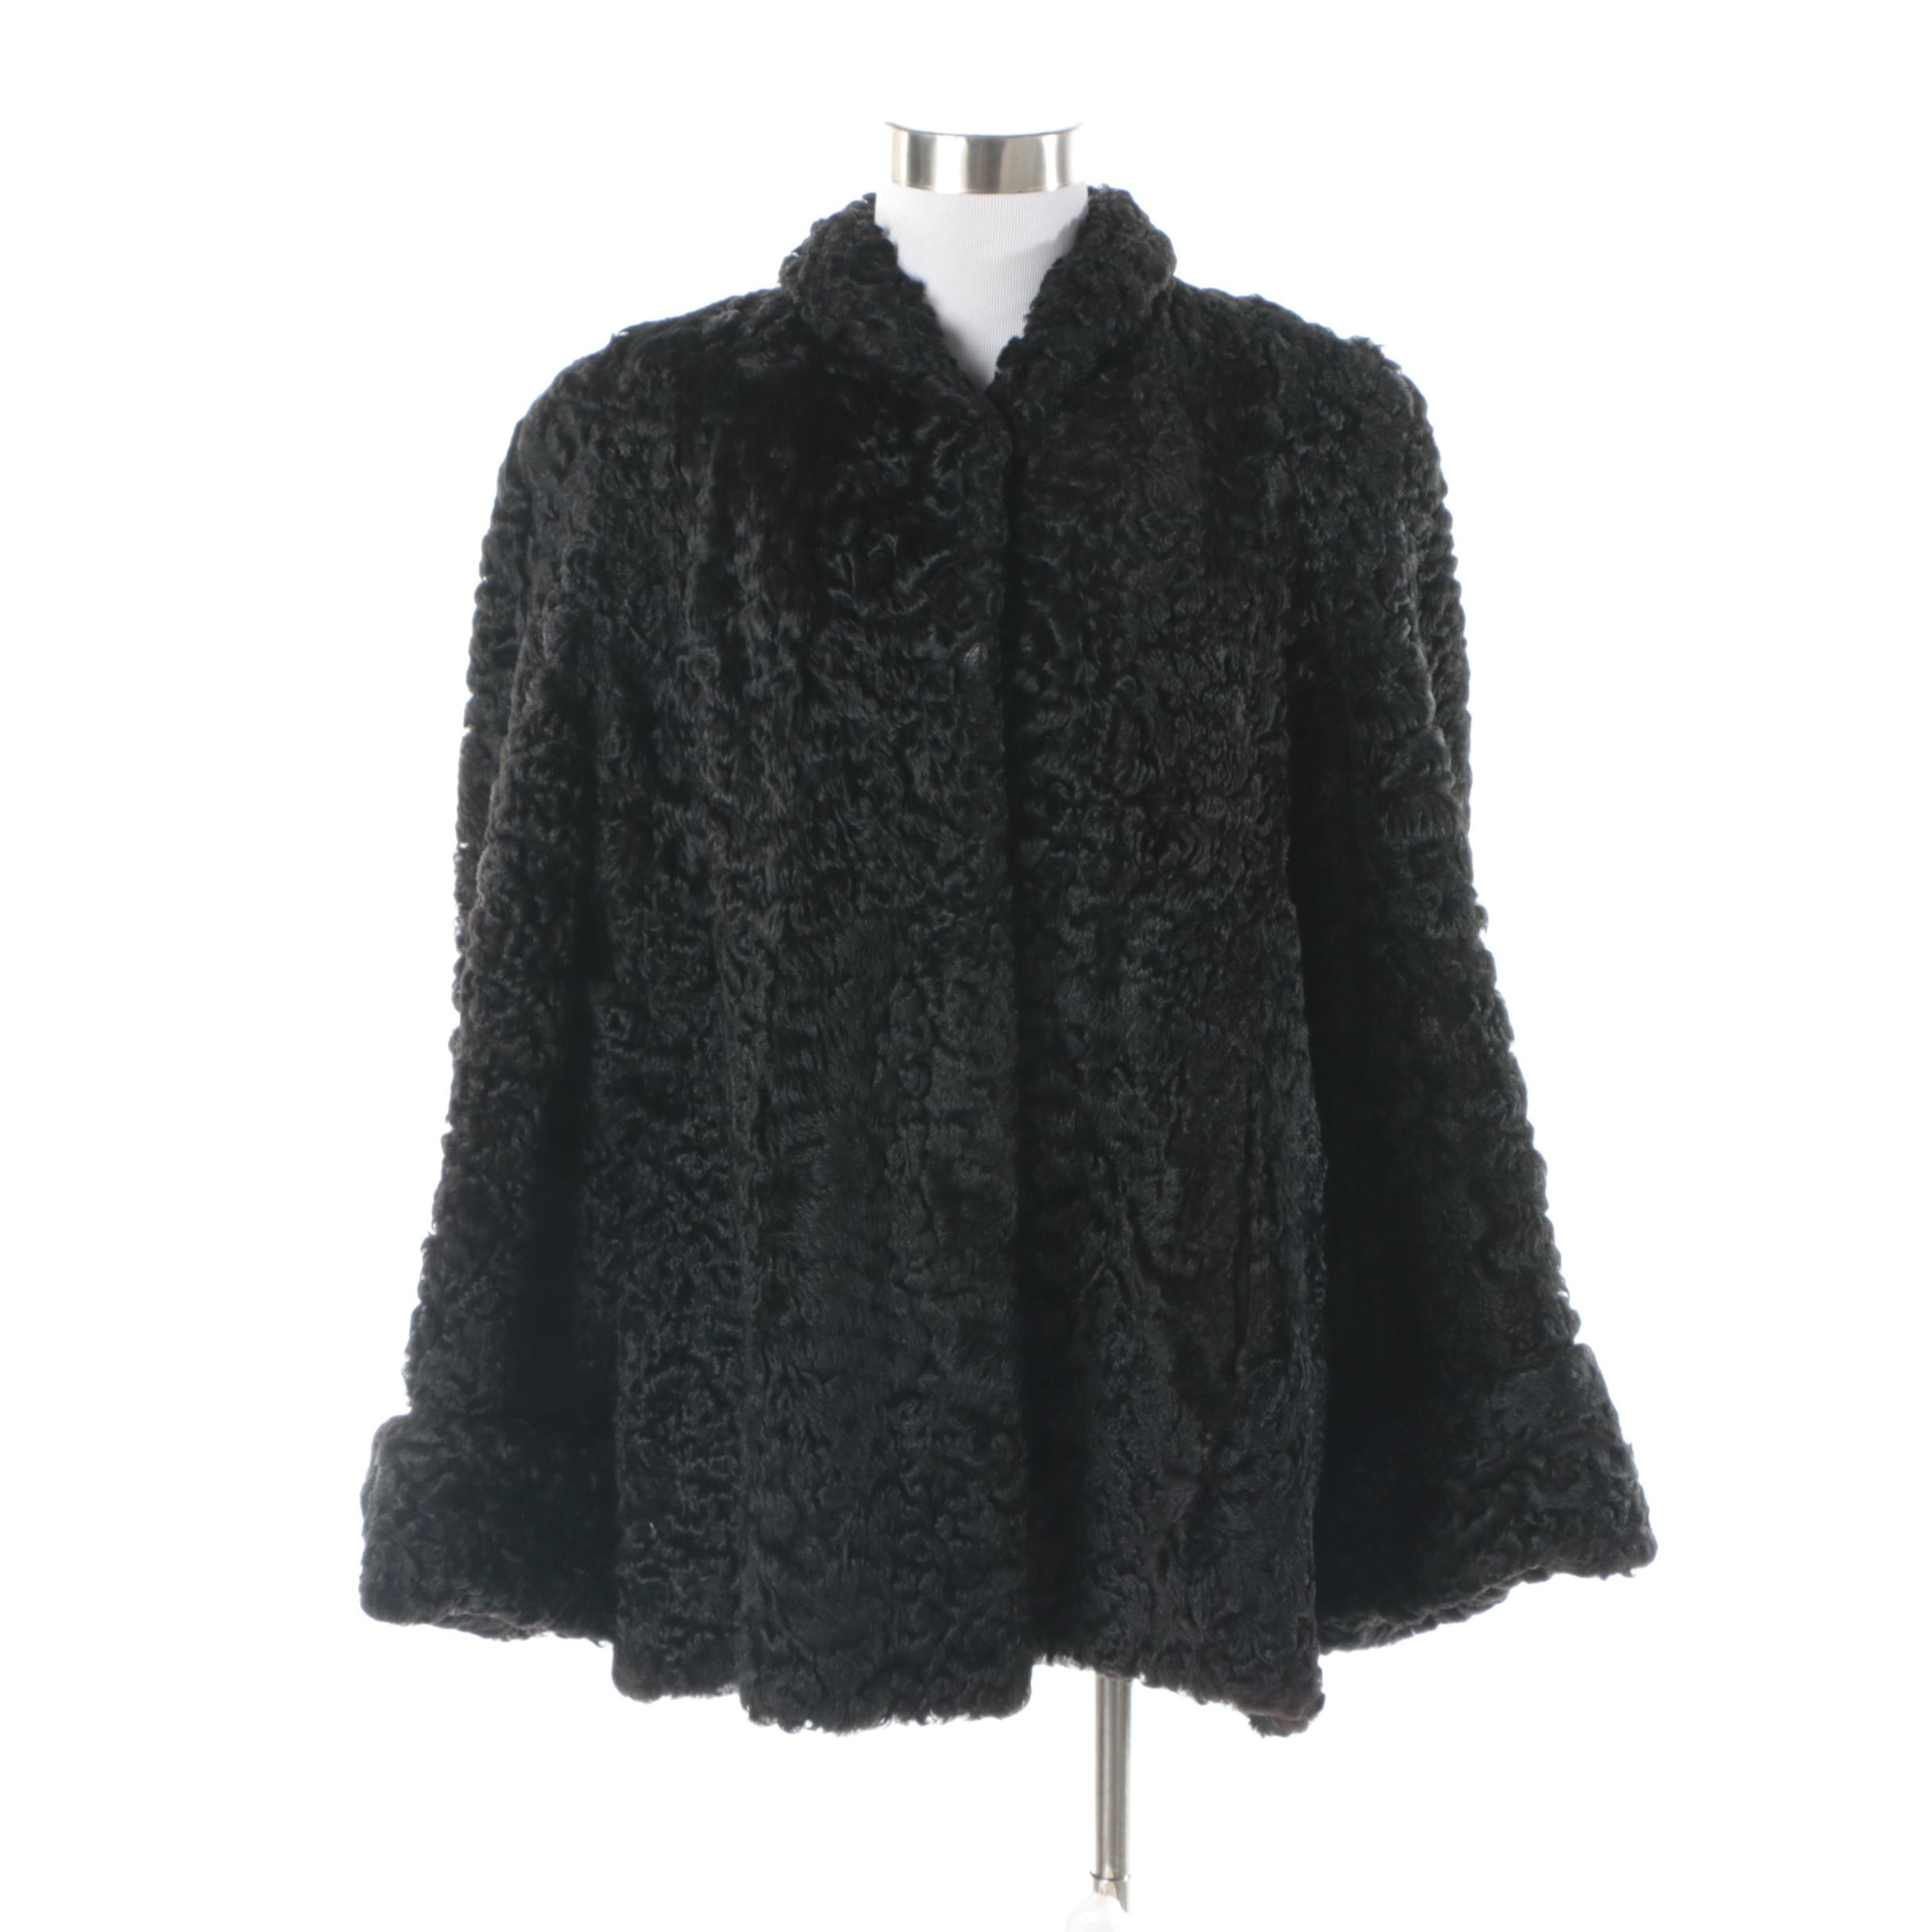 Women's Vintage Black Persian Lamb Fur Cape Coat